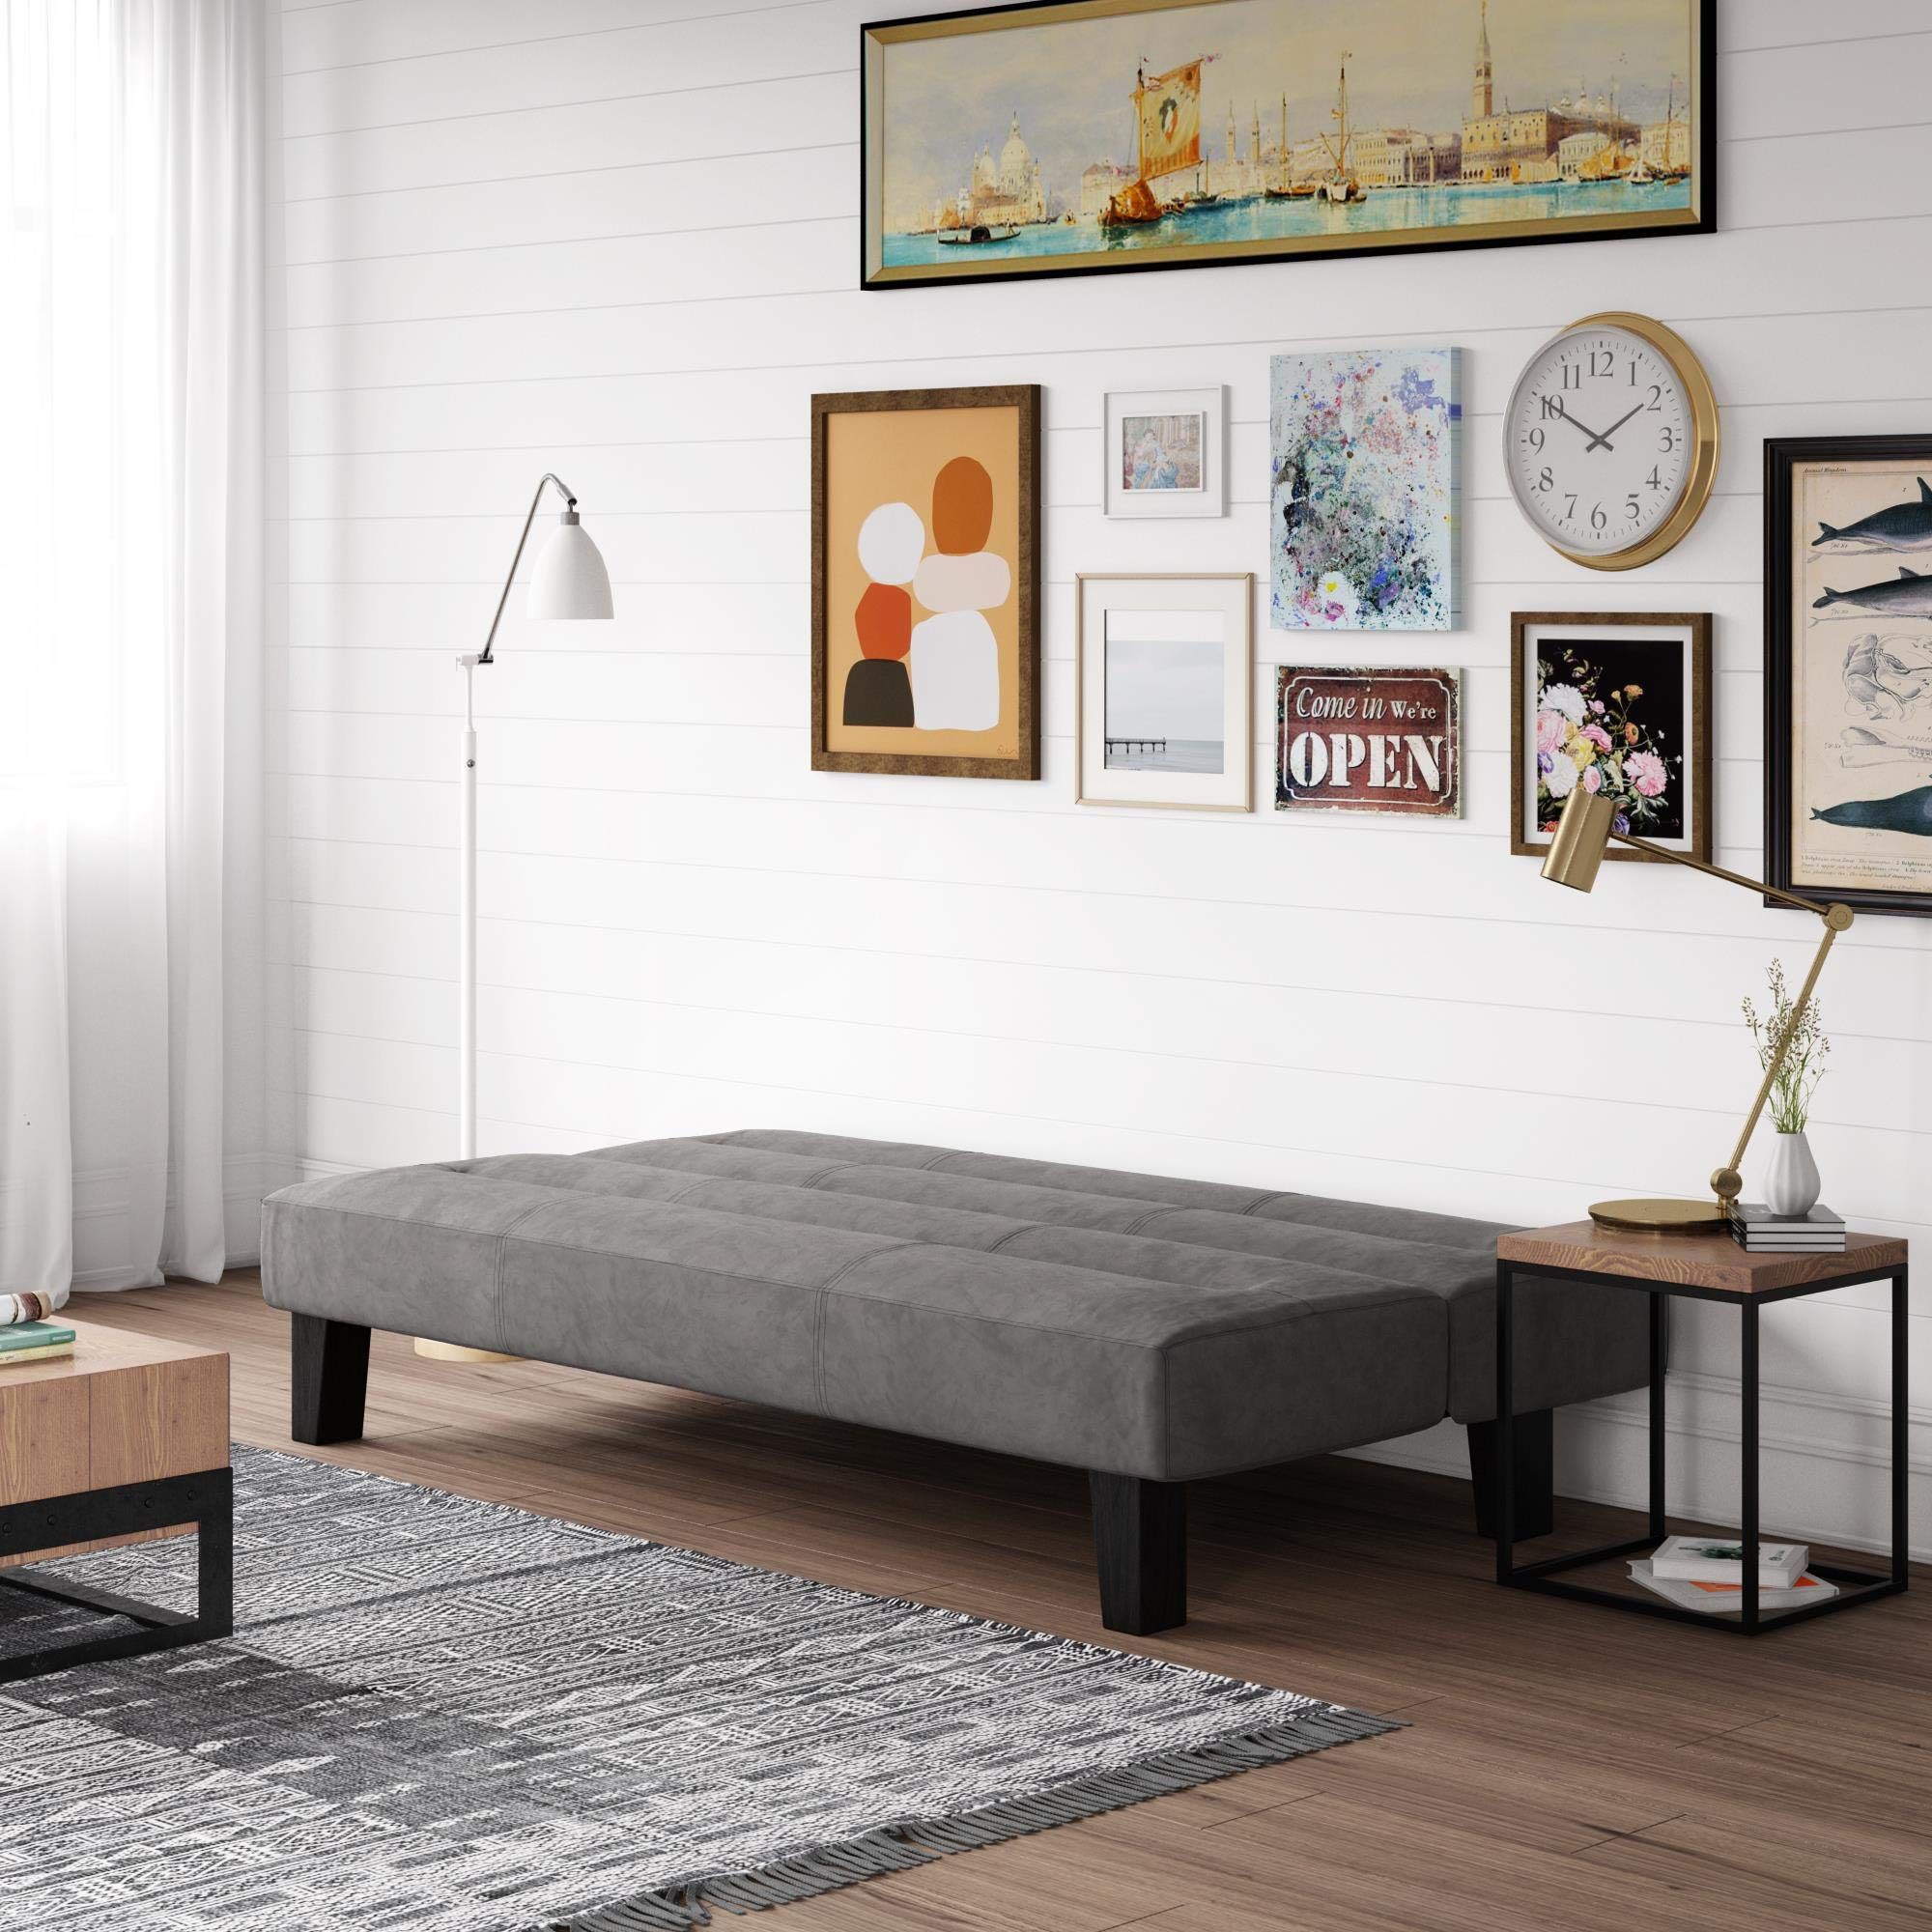 Kebo Futon Sofa Bed, Multiple Colors by Dorel